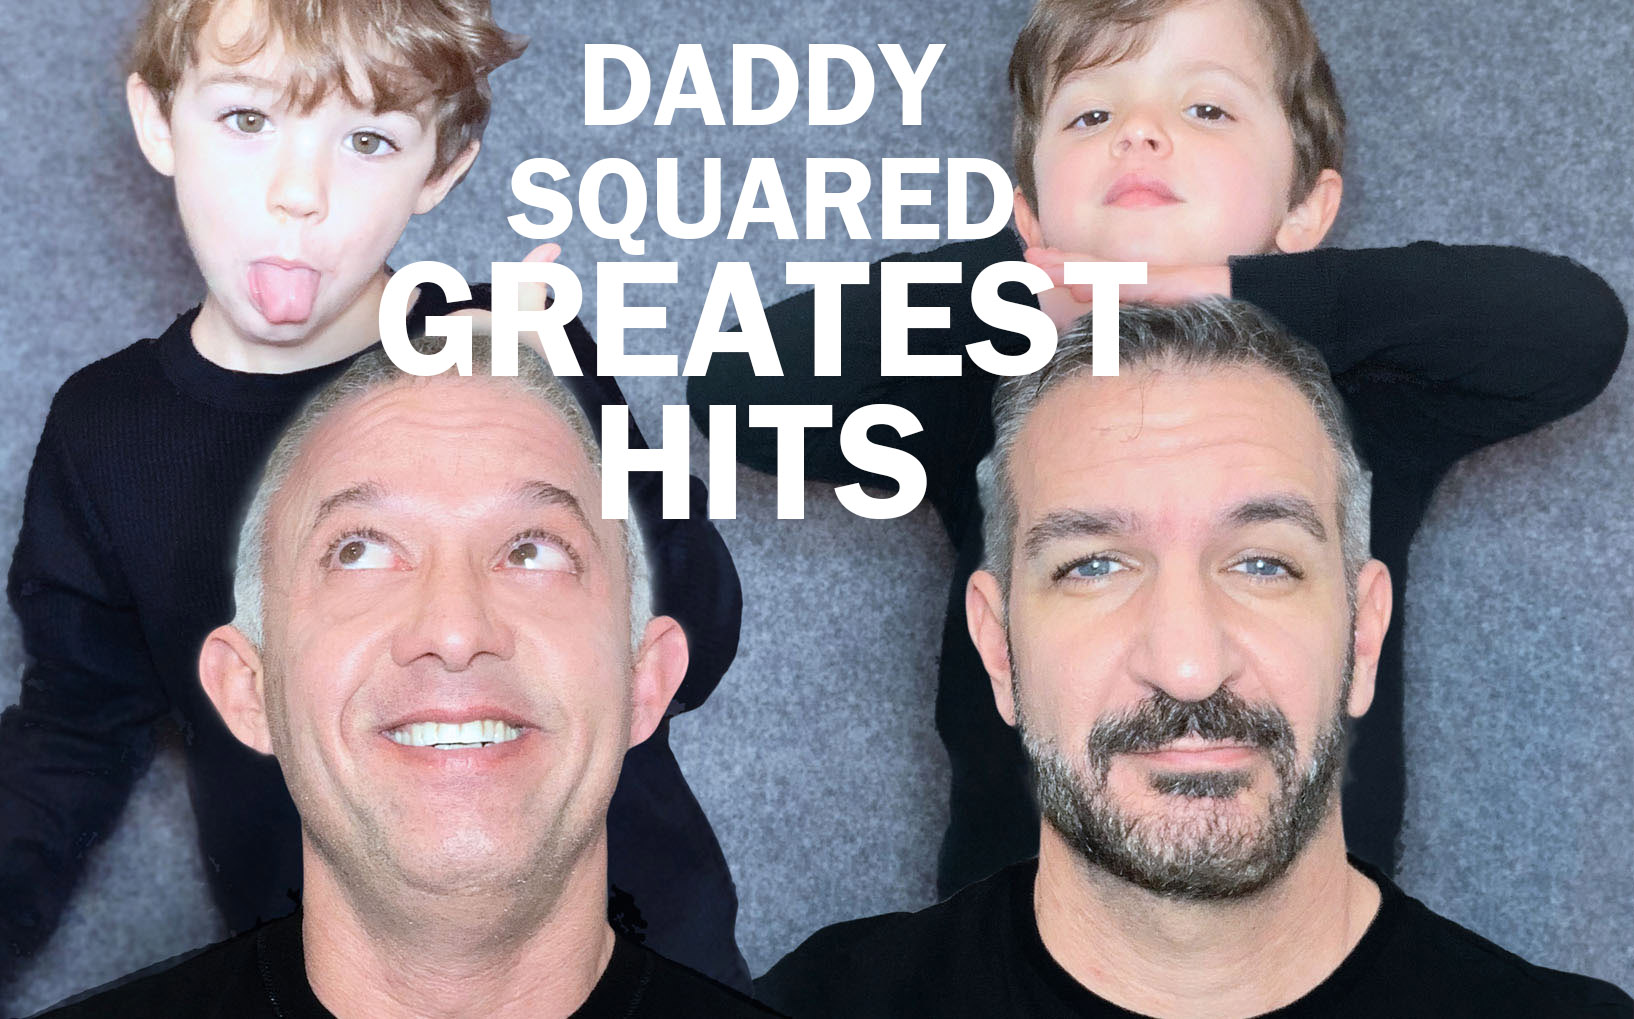 Daddy Squared Greatest Hits